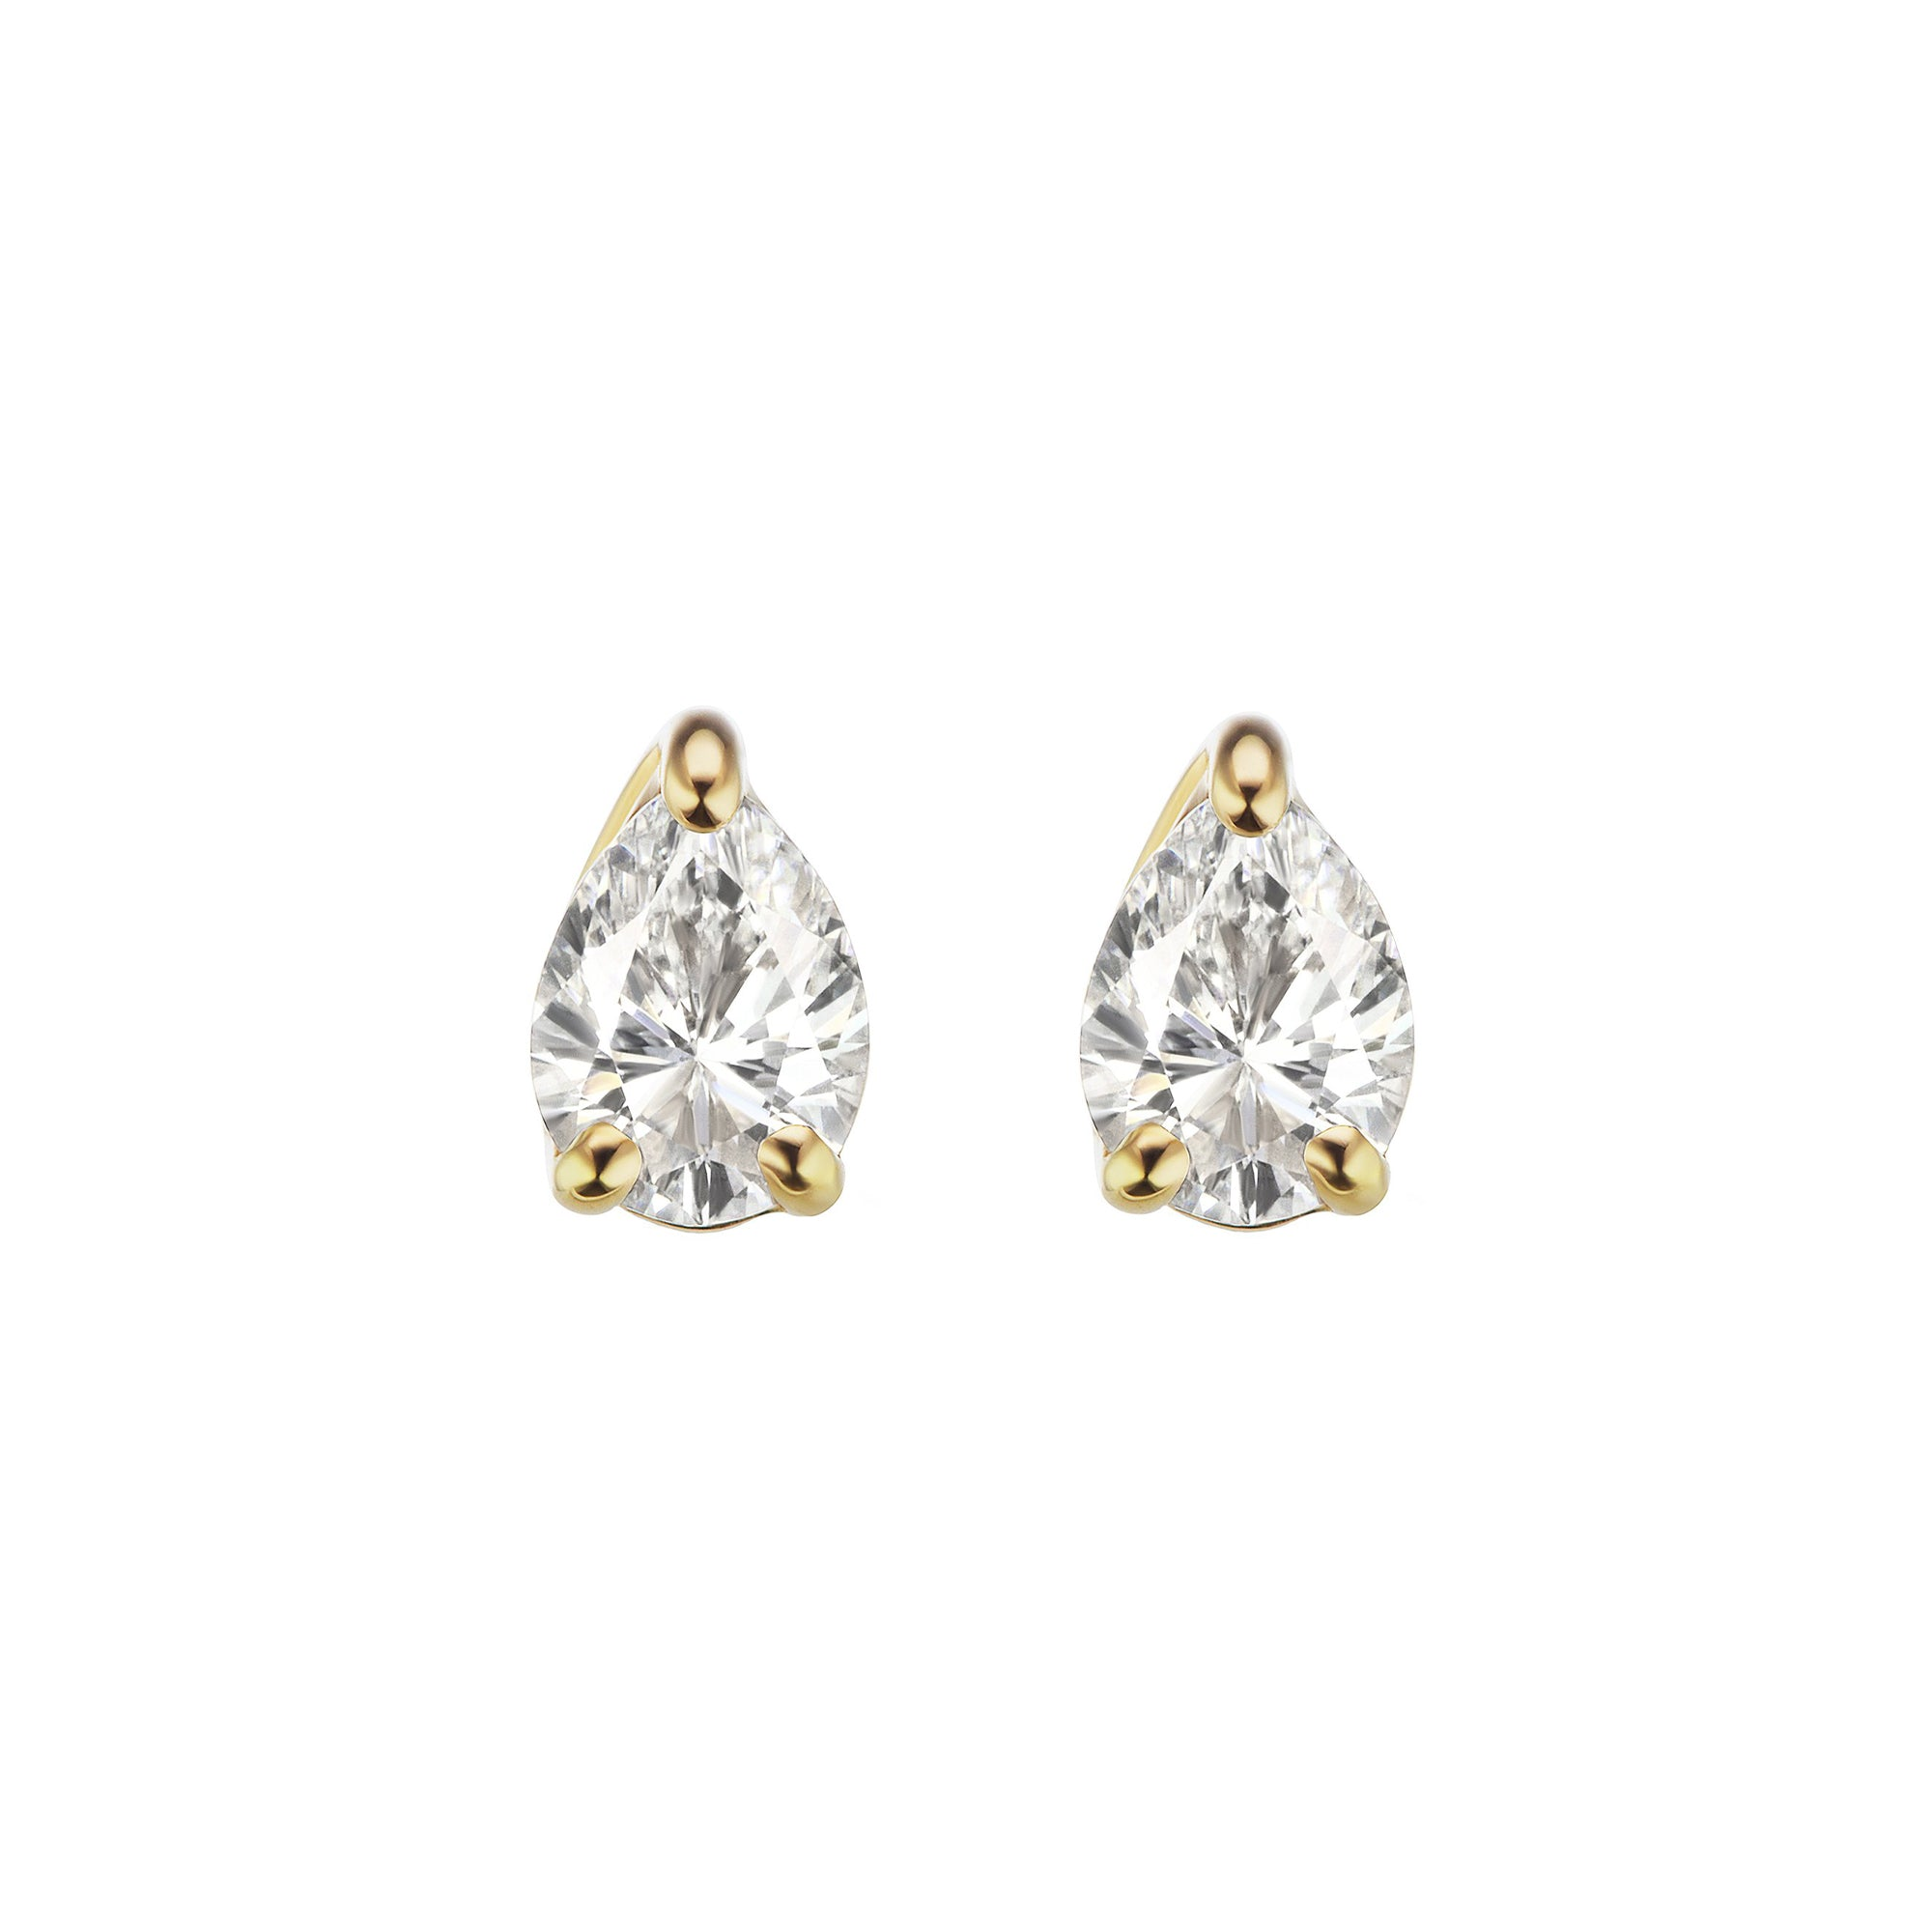 White Sapphire Pirum Studs by Altruist for Broken English Jewelry